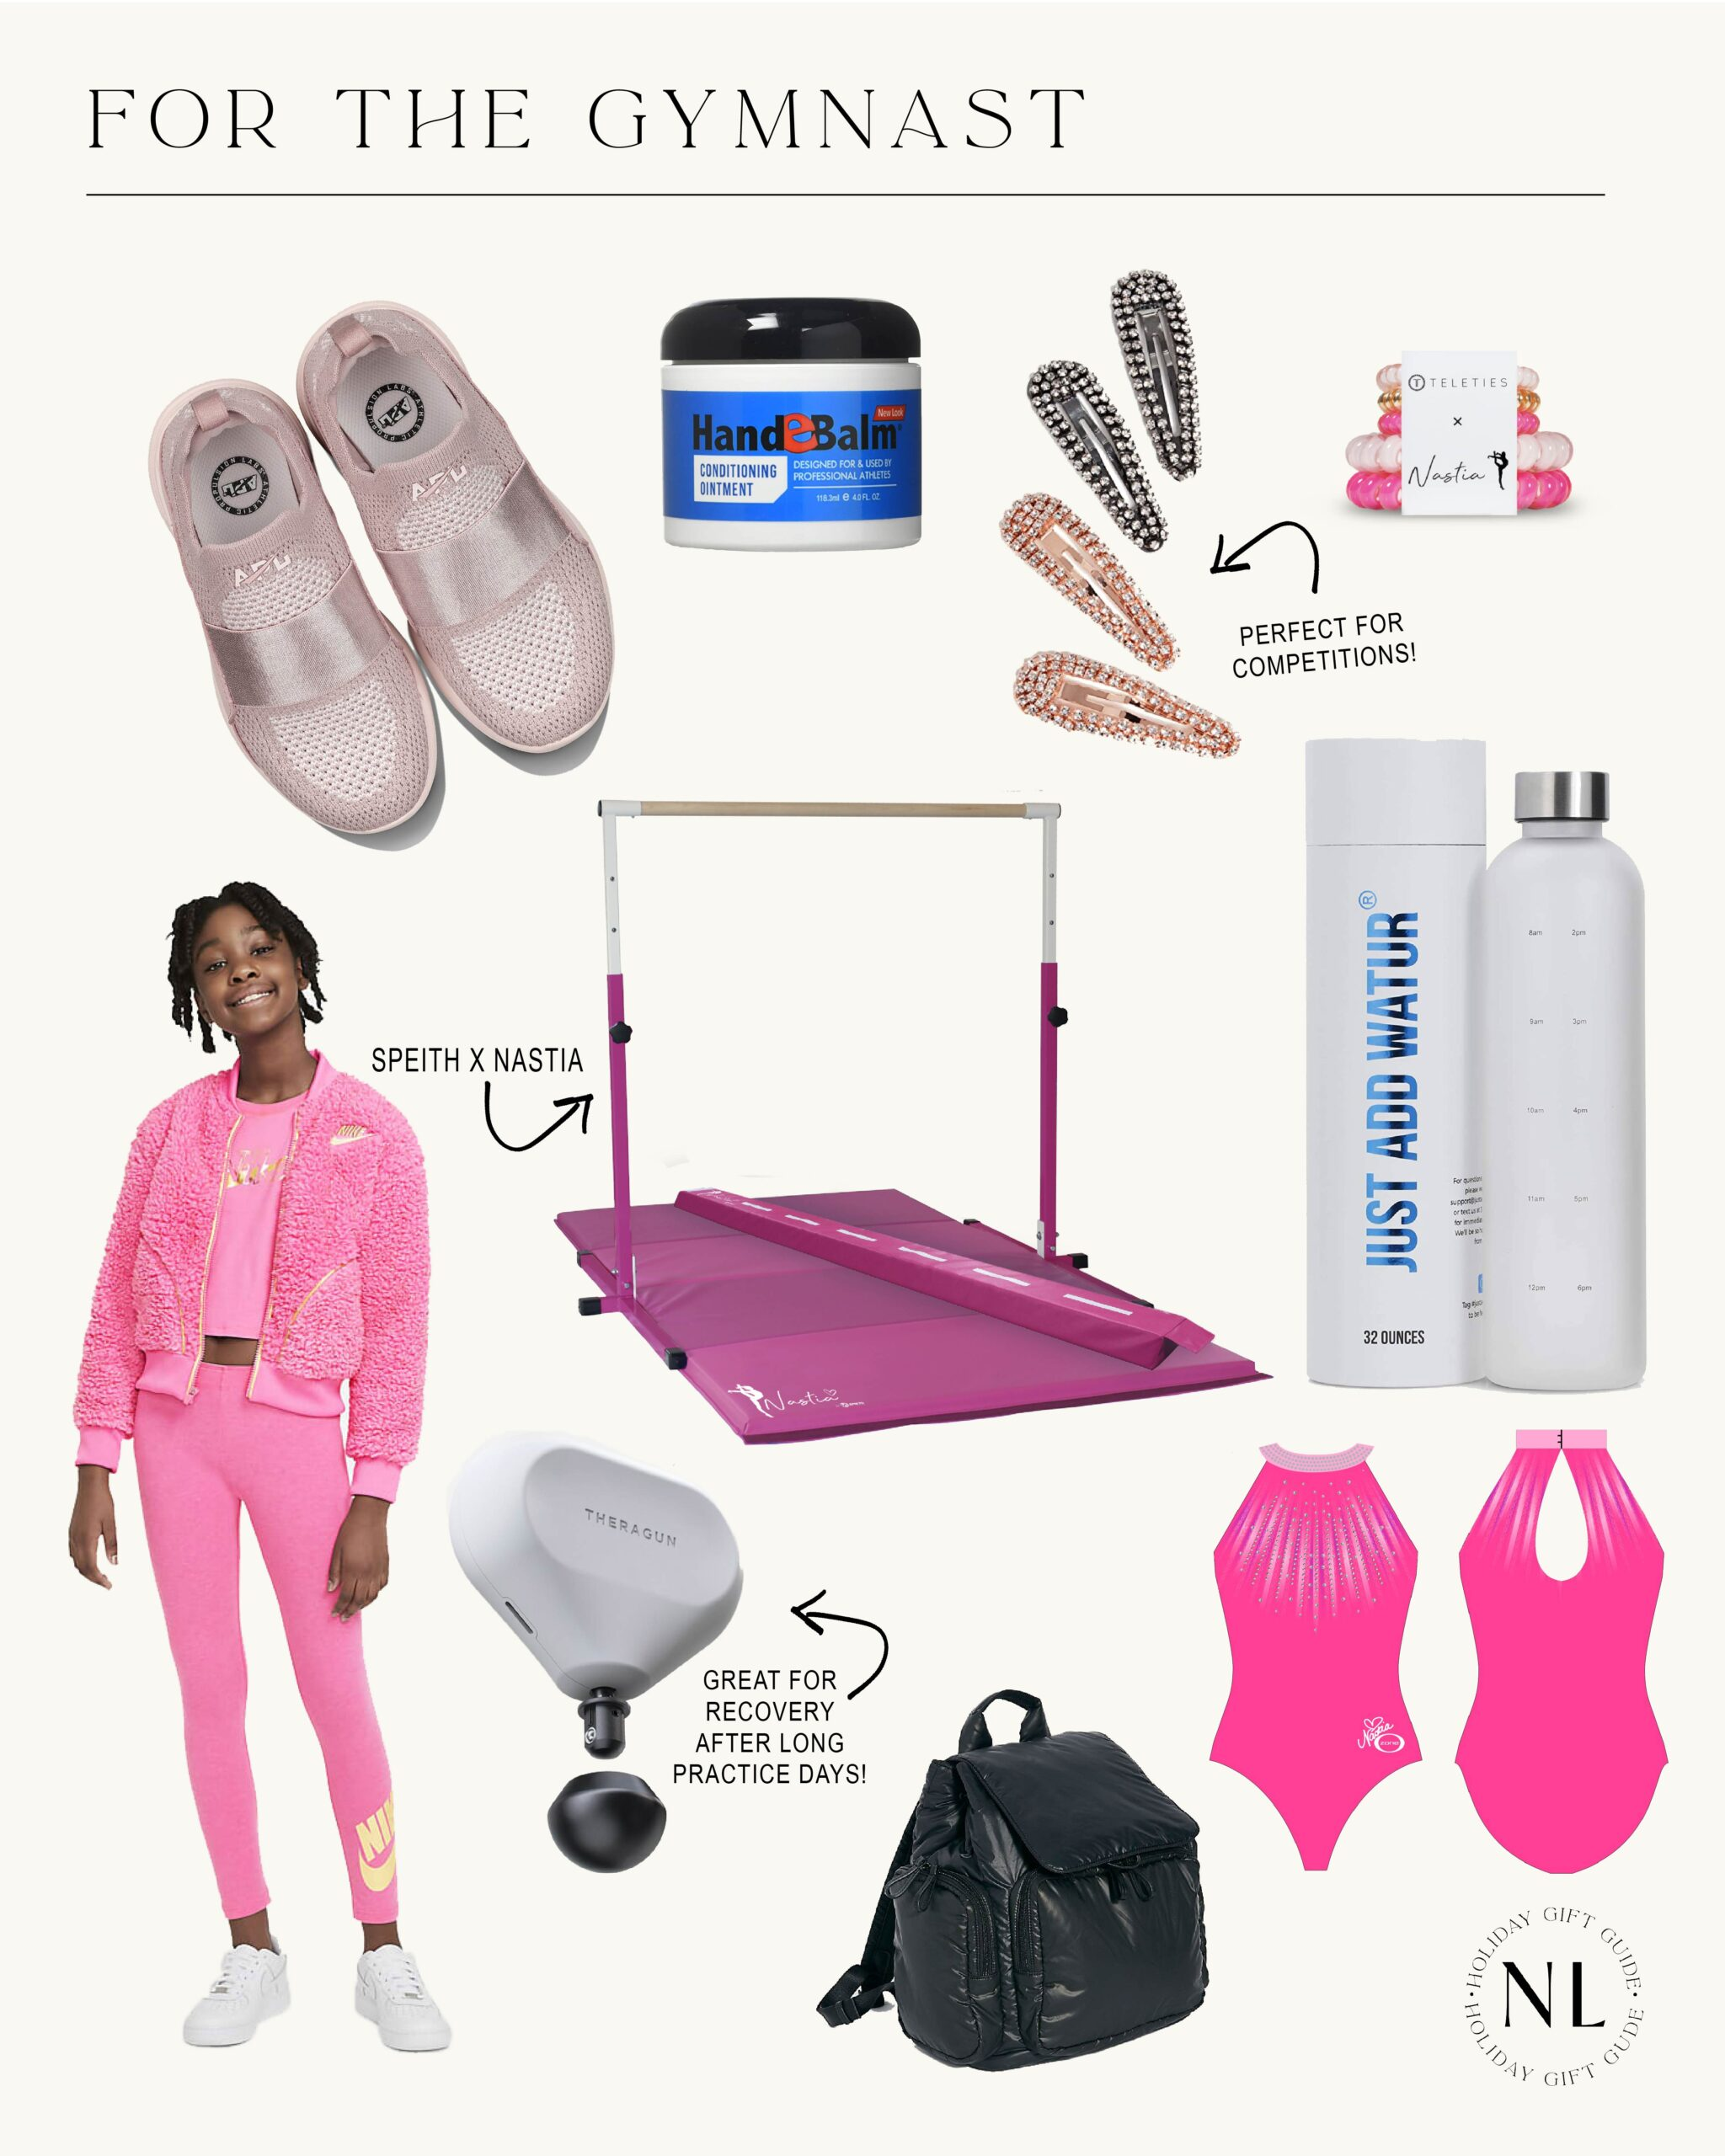 GIFT GUIDE: For The Gymnast